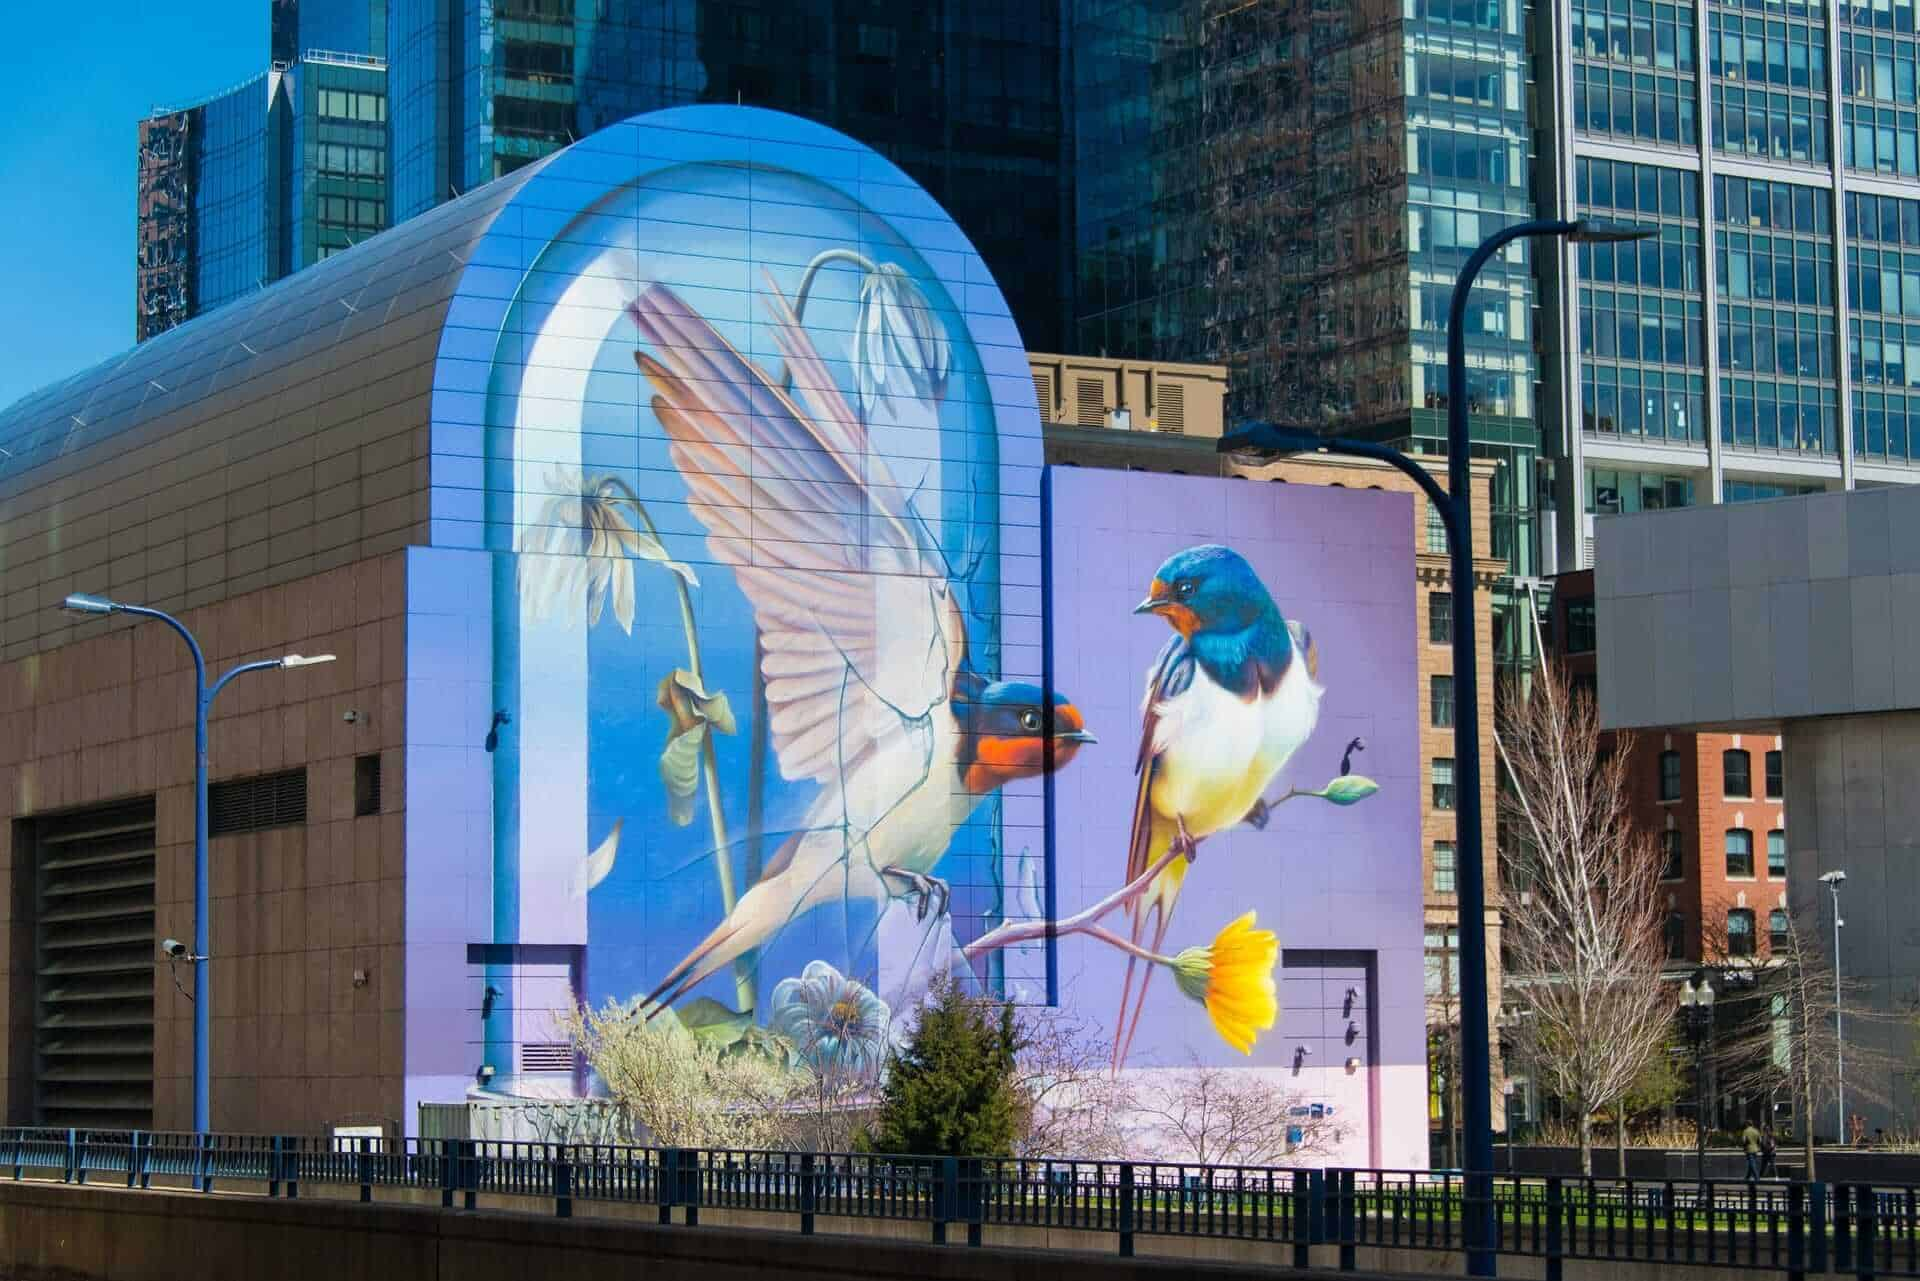 Murals in Boston, USA